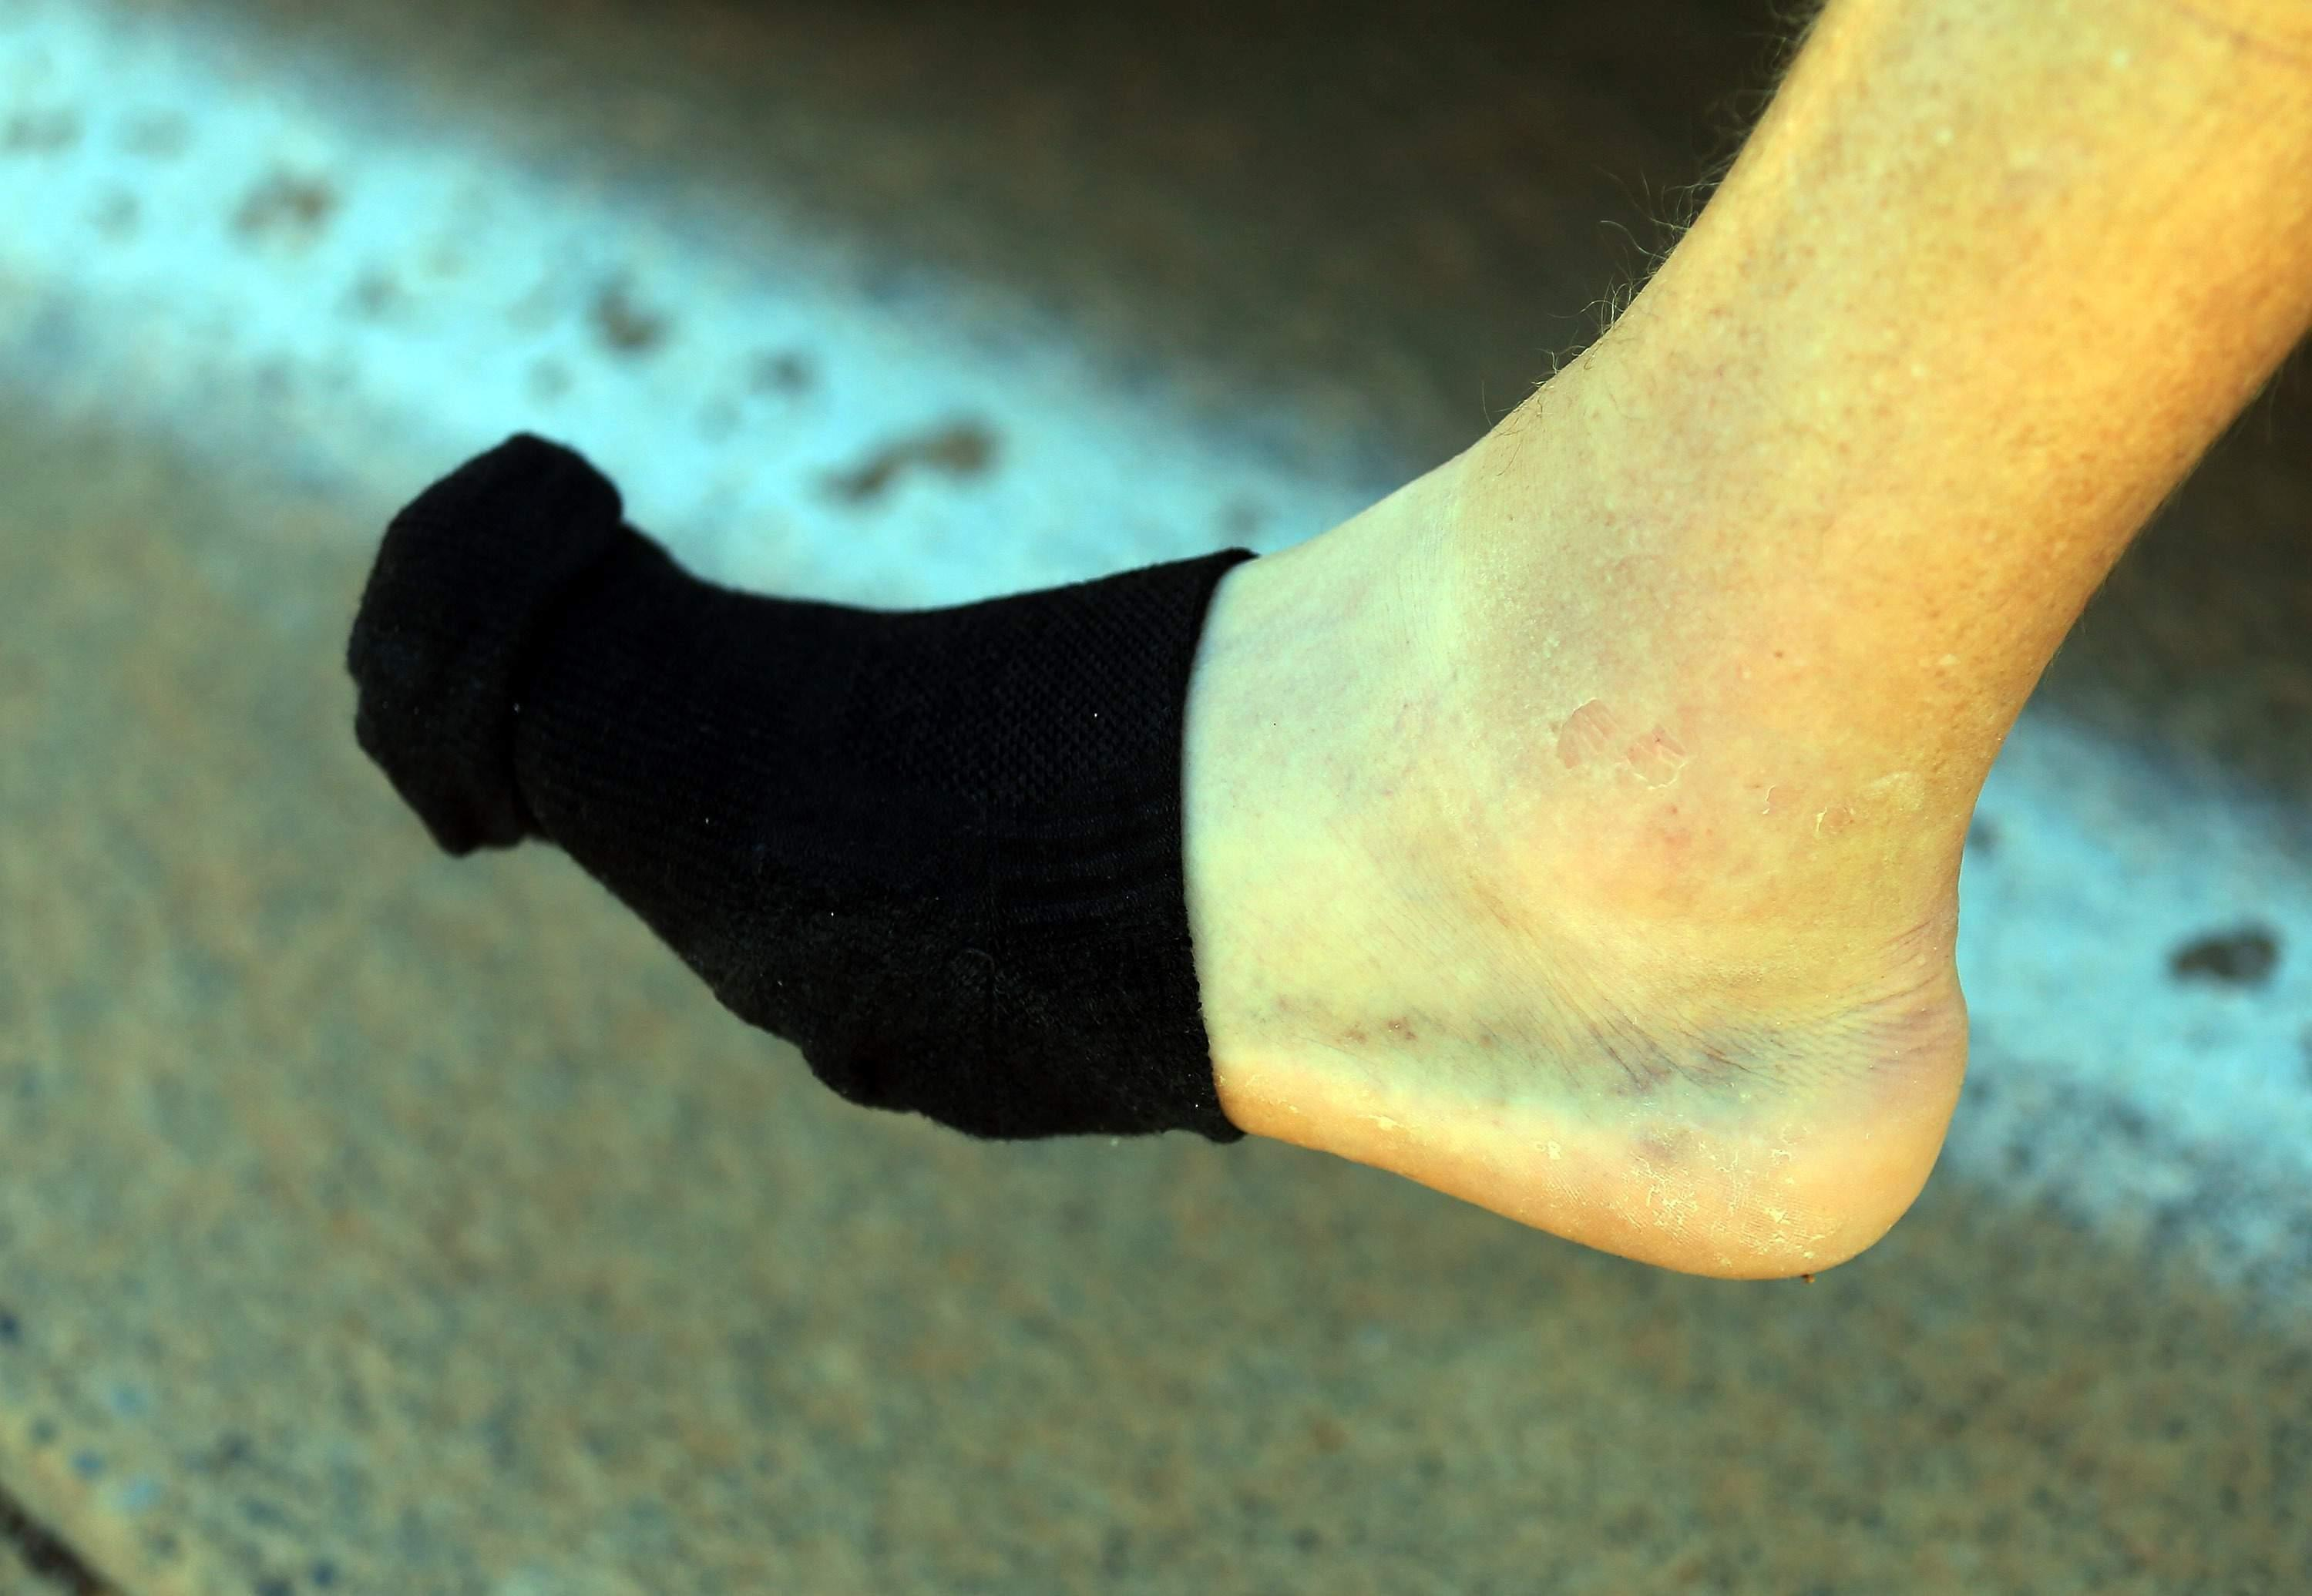 Unexplained Bruising Have You Feeling Blue? Here Are Six Possible Reasons Why You Have Them